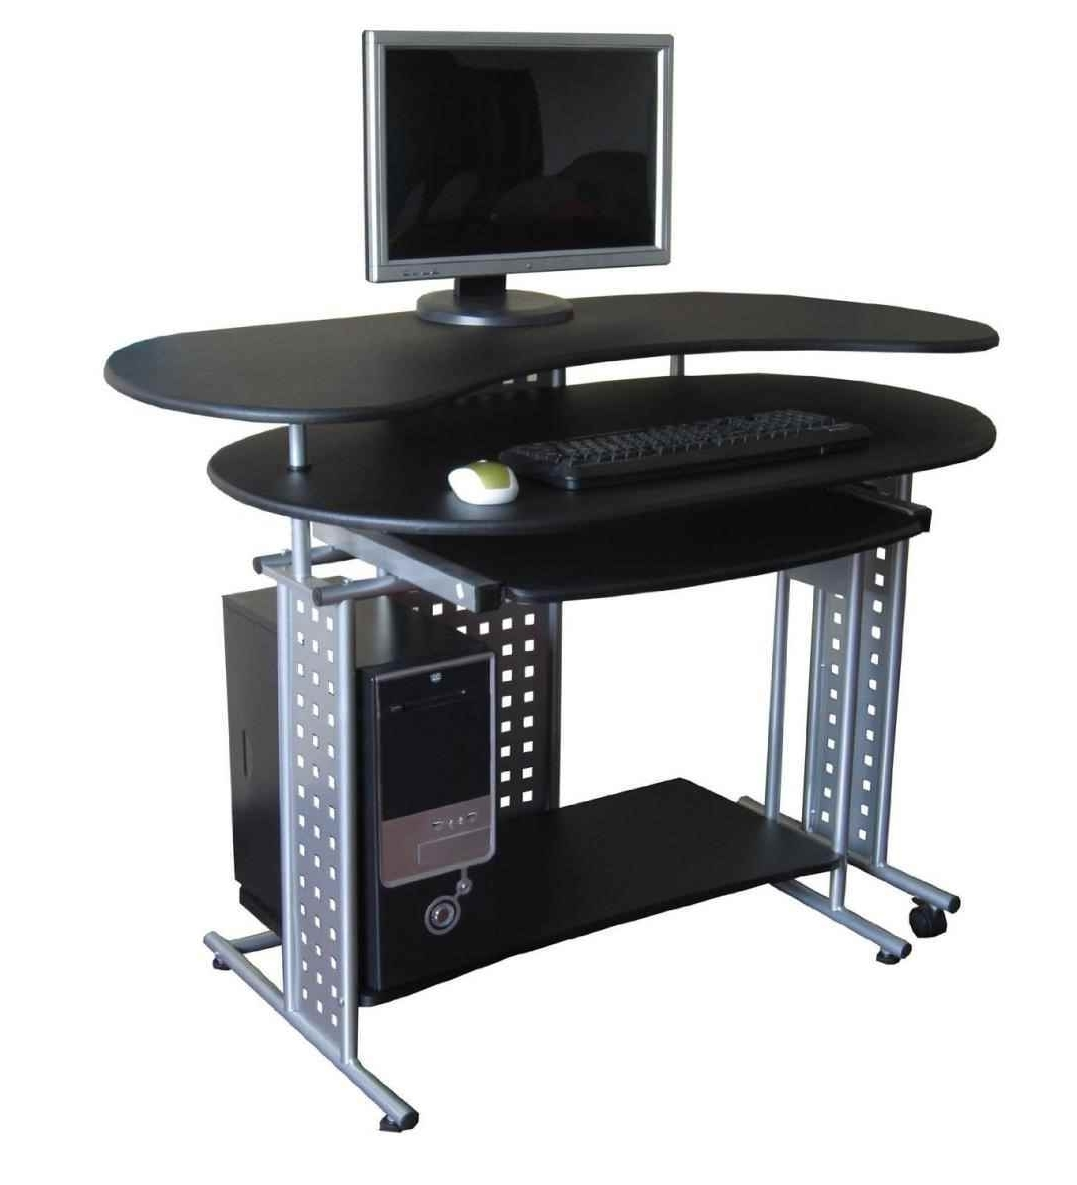 Trendy Shocking Office Desk Gaming Furniture Supplies Image For Computer Regarding Computer Desks For Gamers (View 20 of 20)